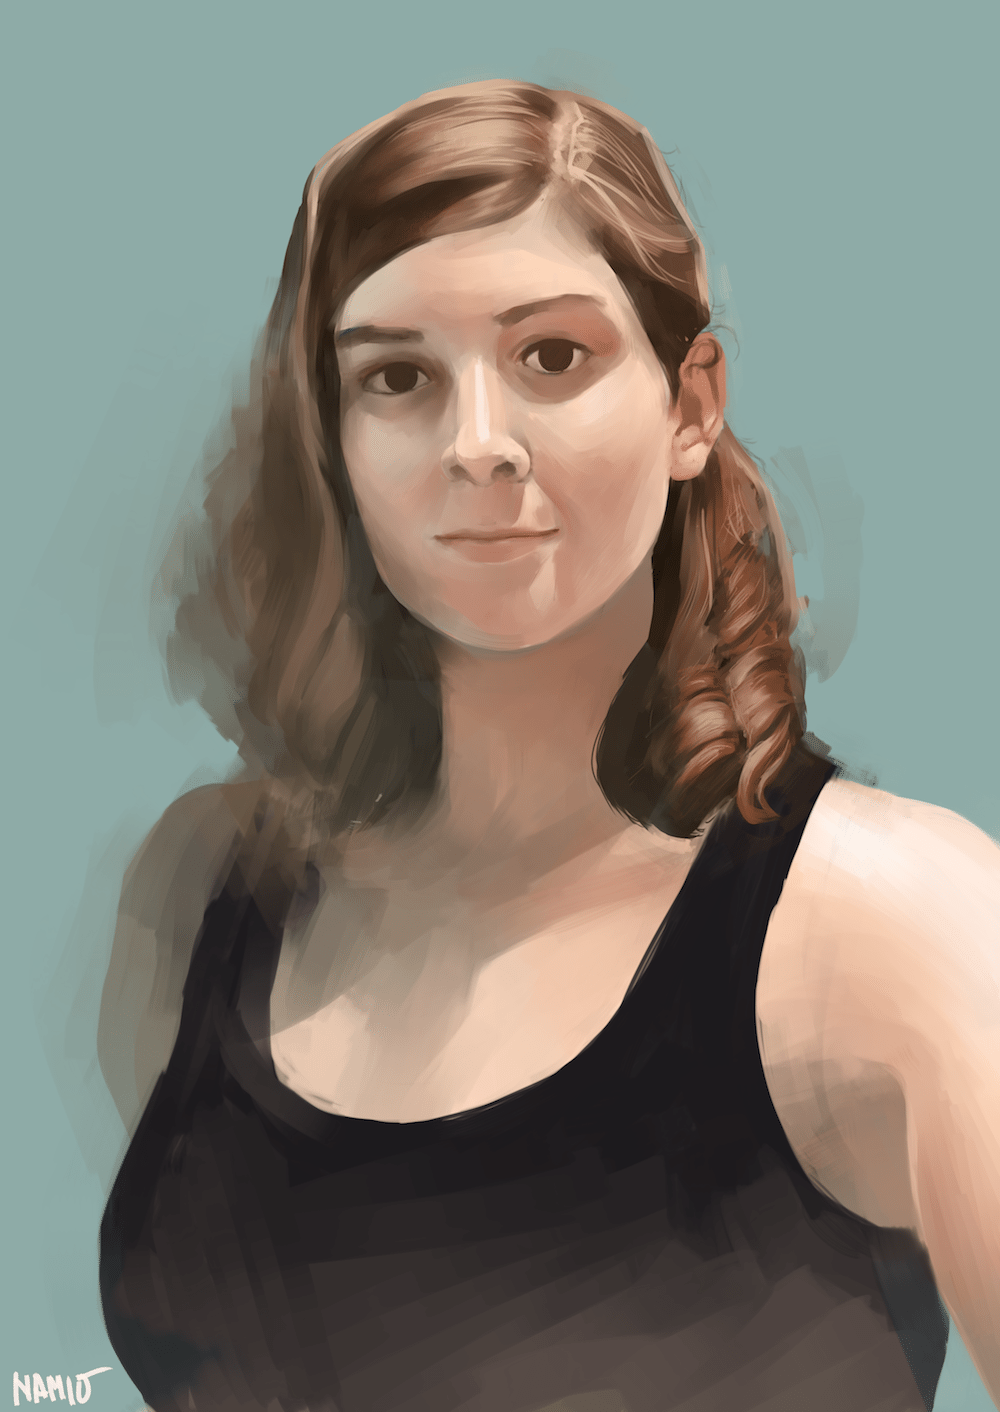 Digitally Painted Portrait of a woman by Namio